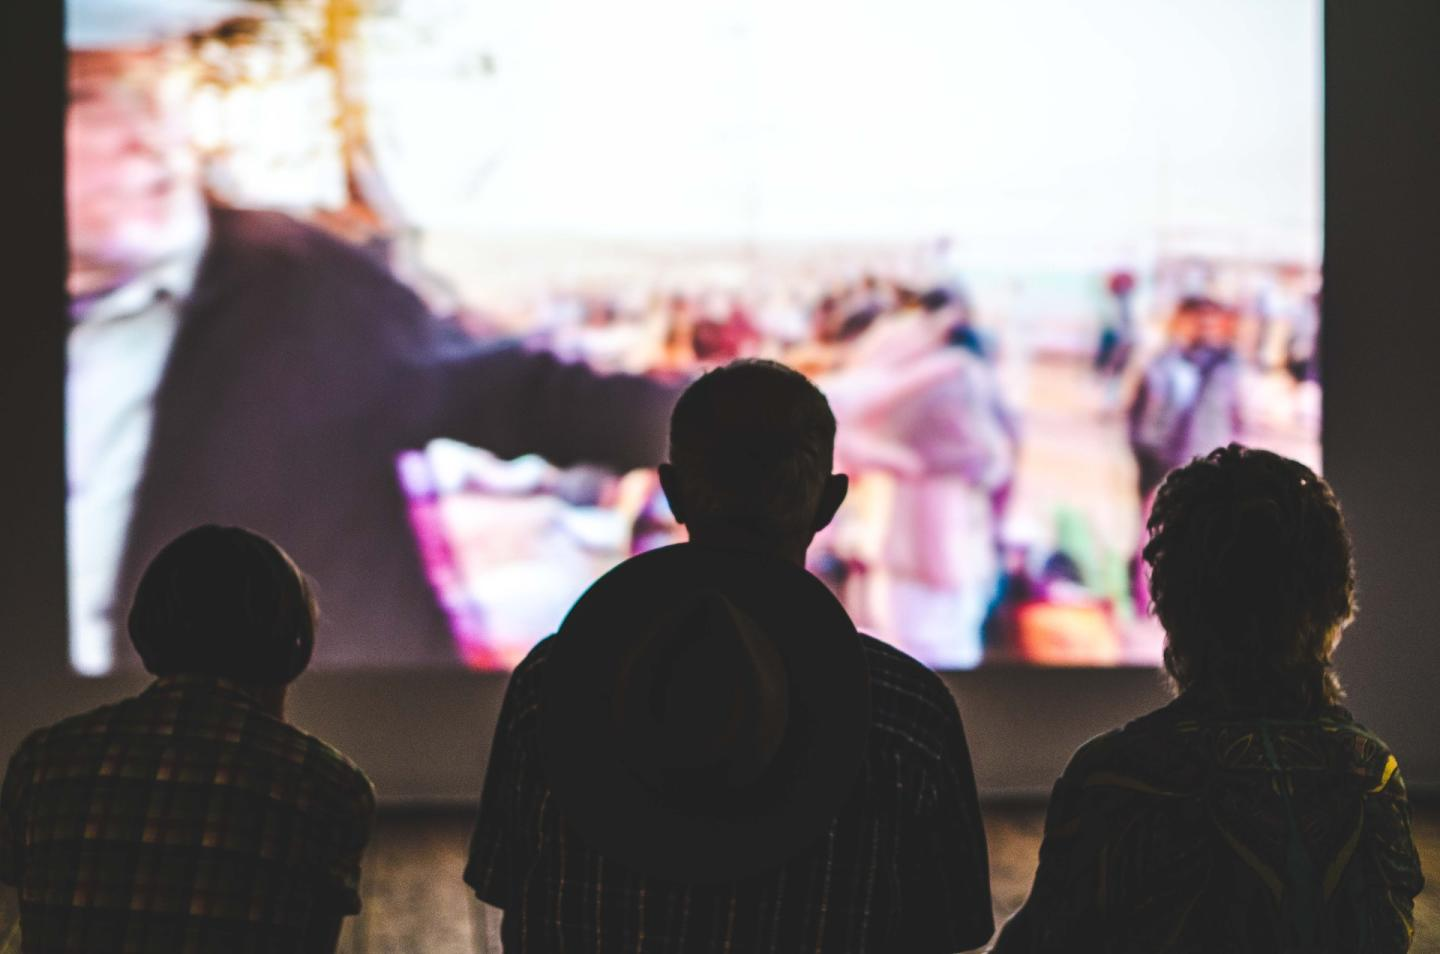 people watch a move in a big screen